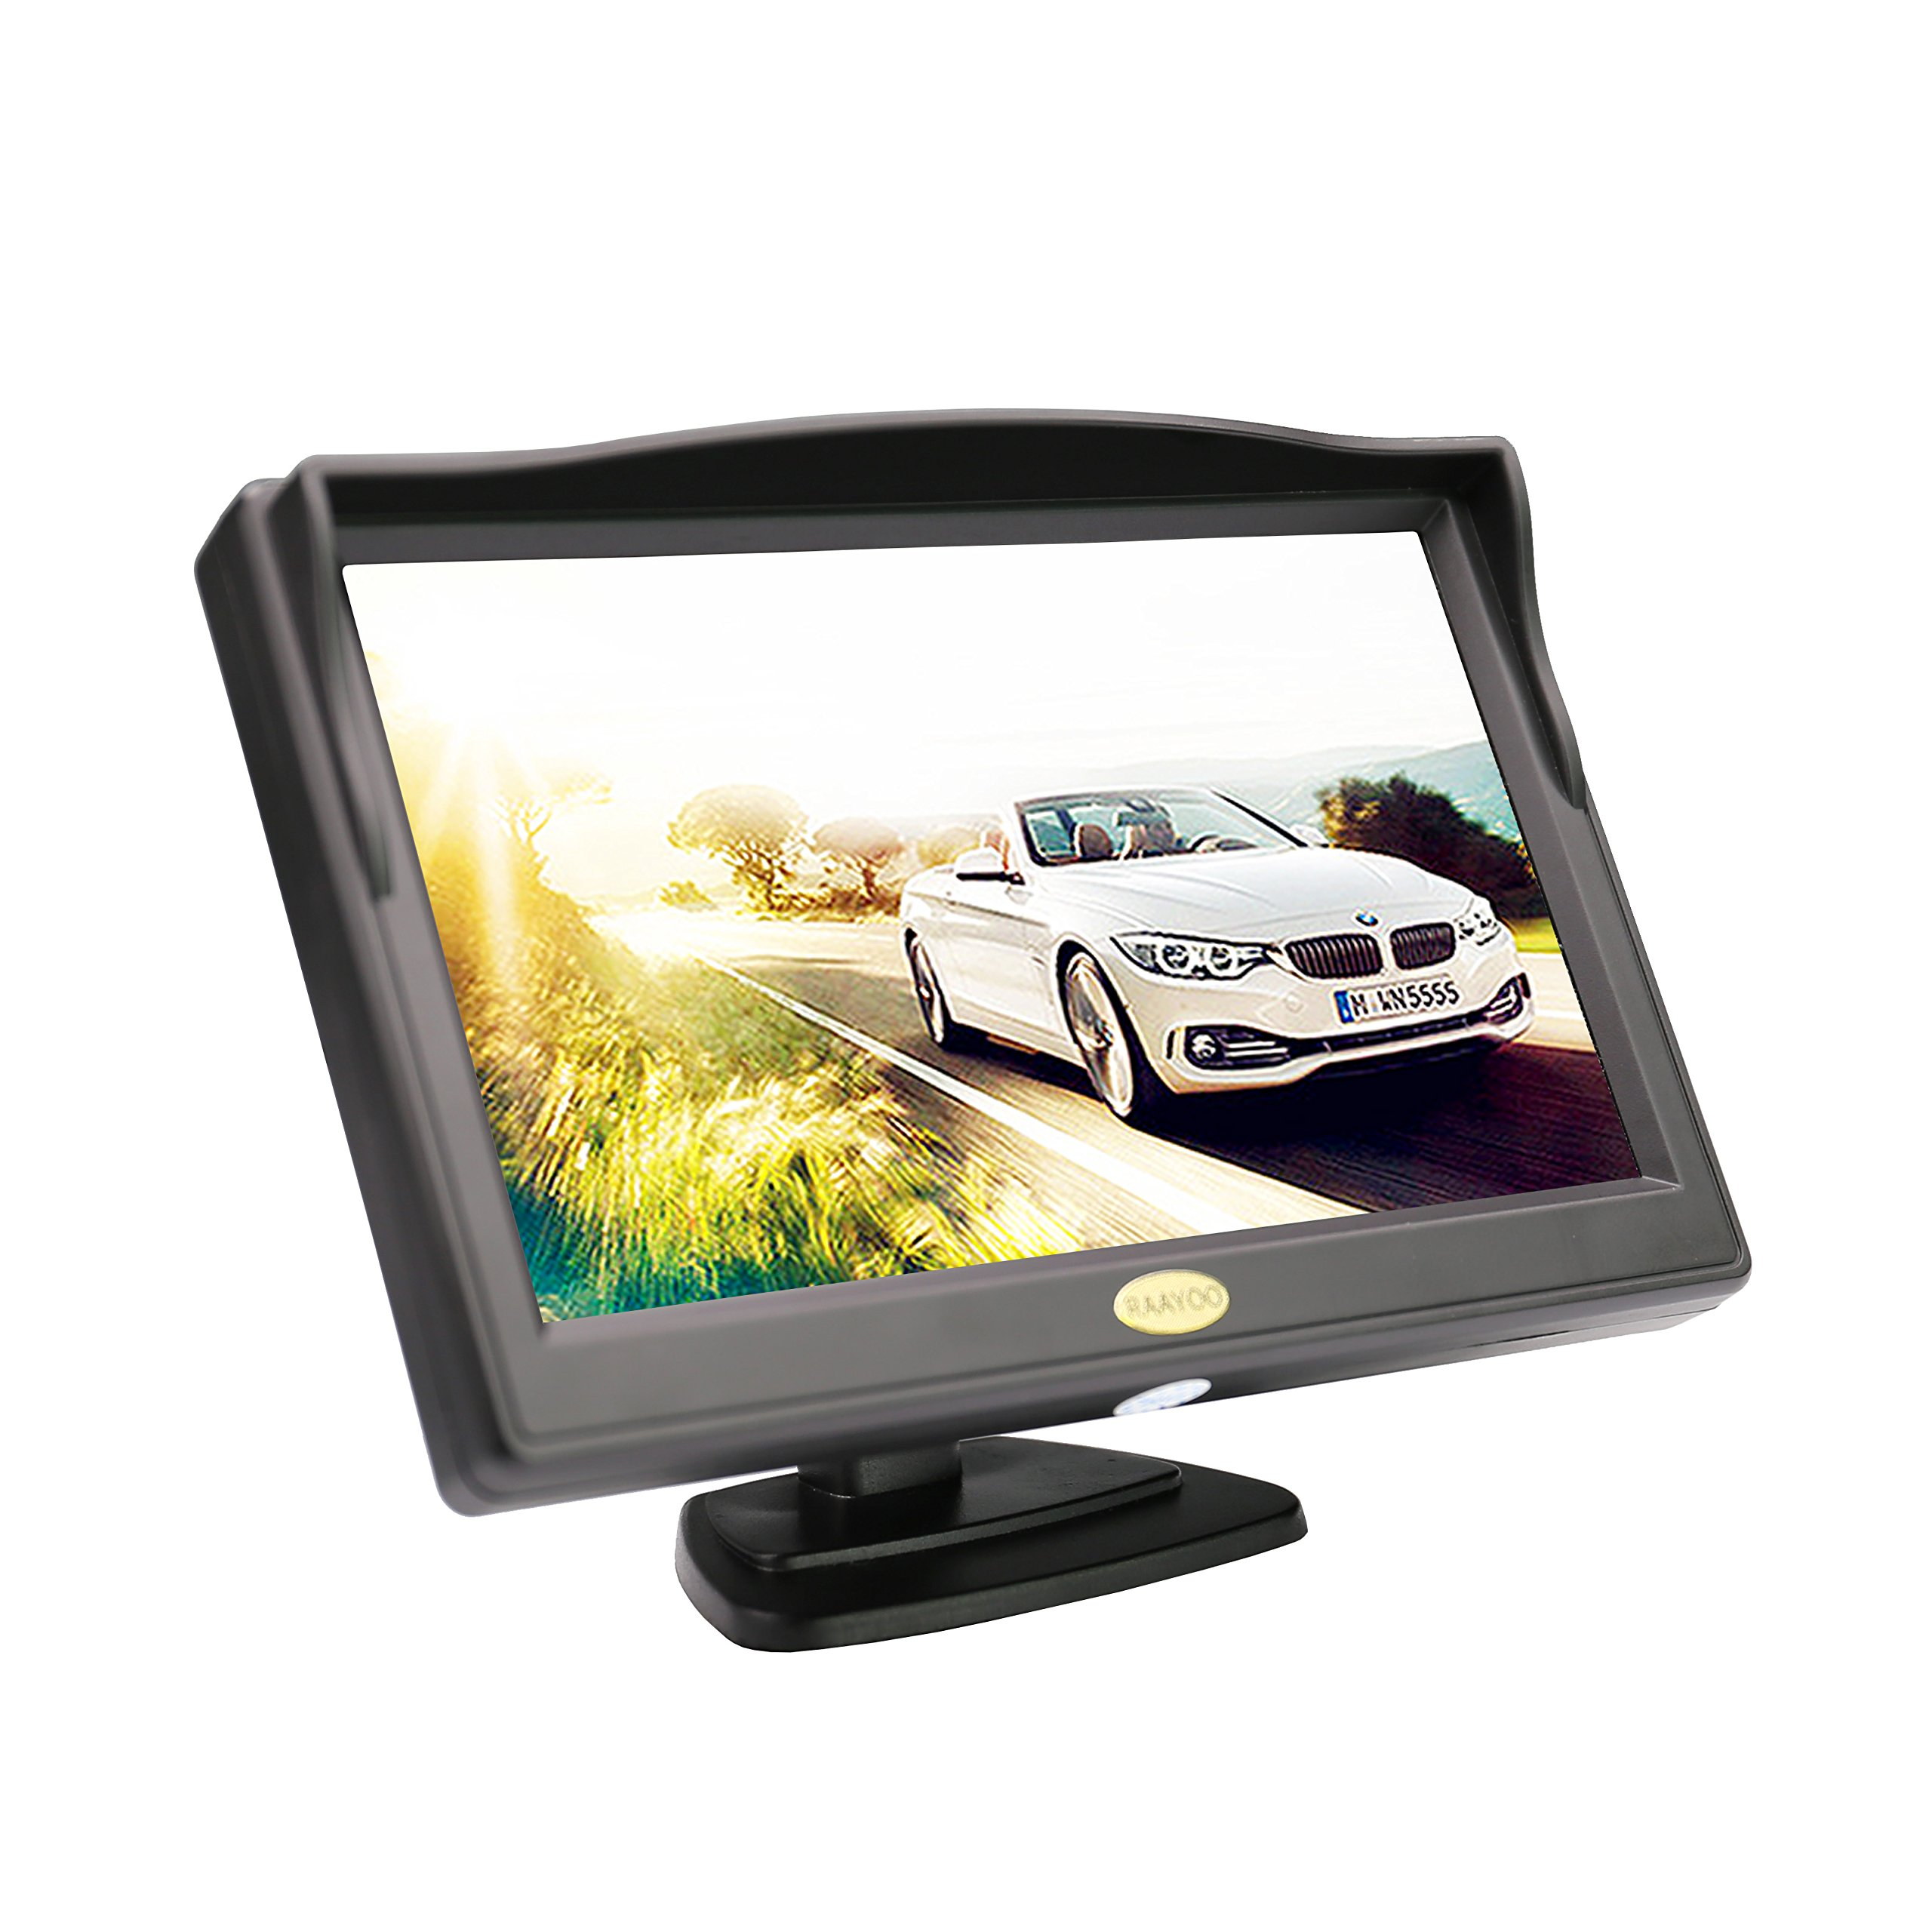 RAAYOO S5-001 5 inch High Definition Color TFT LCD Backup Monitor Display Screen for Car Rear View Camera with 2 Optional Bracket,2 Way Video input,12V/24V Wide Voltage